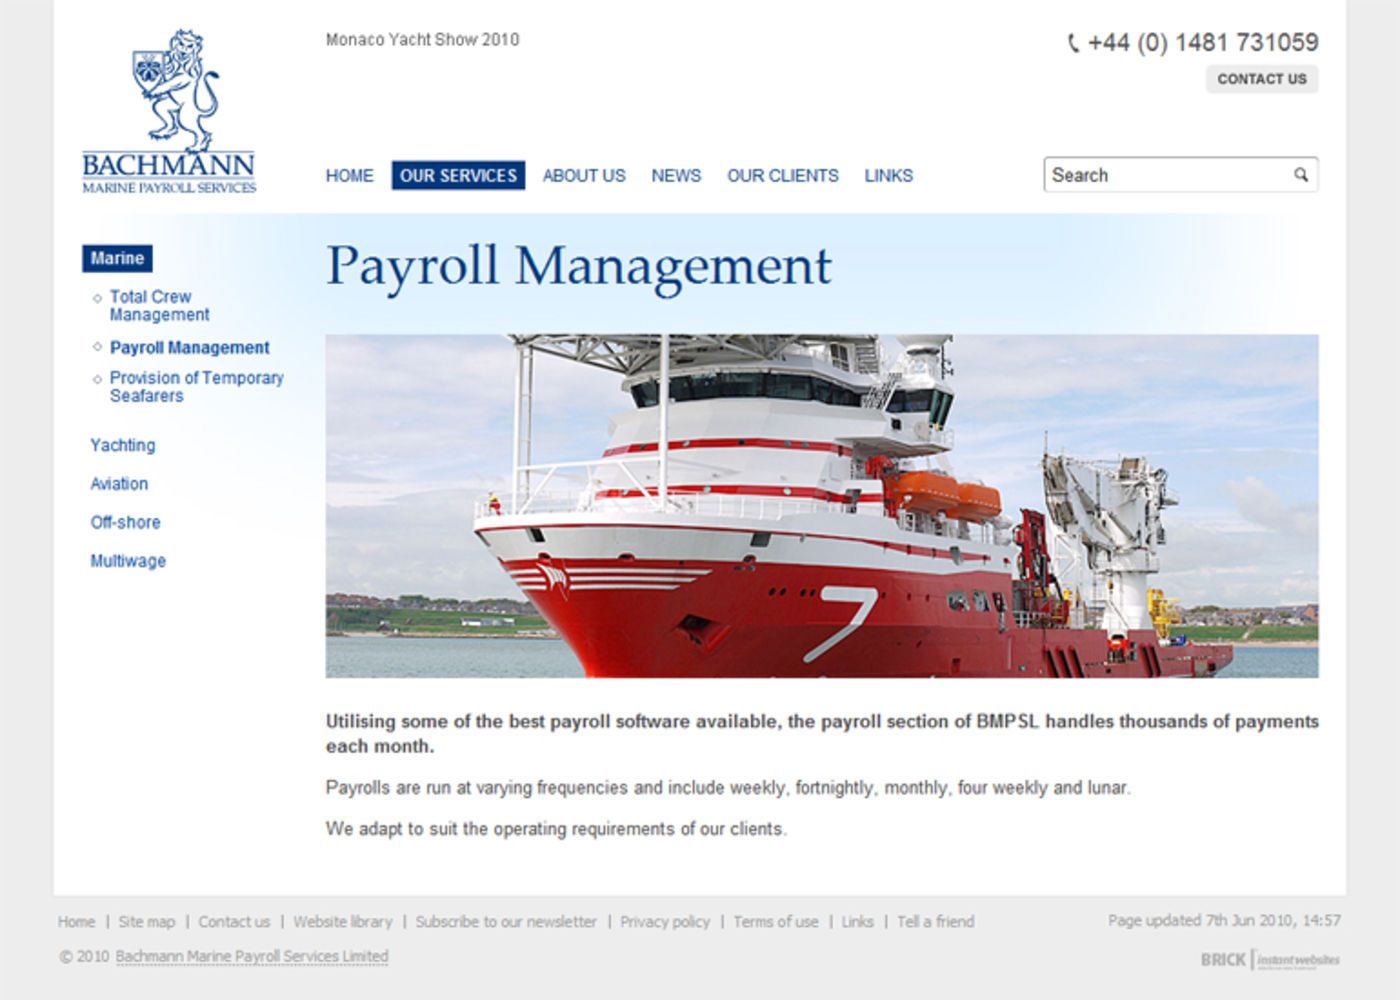 Bachmann Marine Payroll Services Regular page